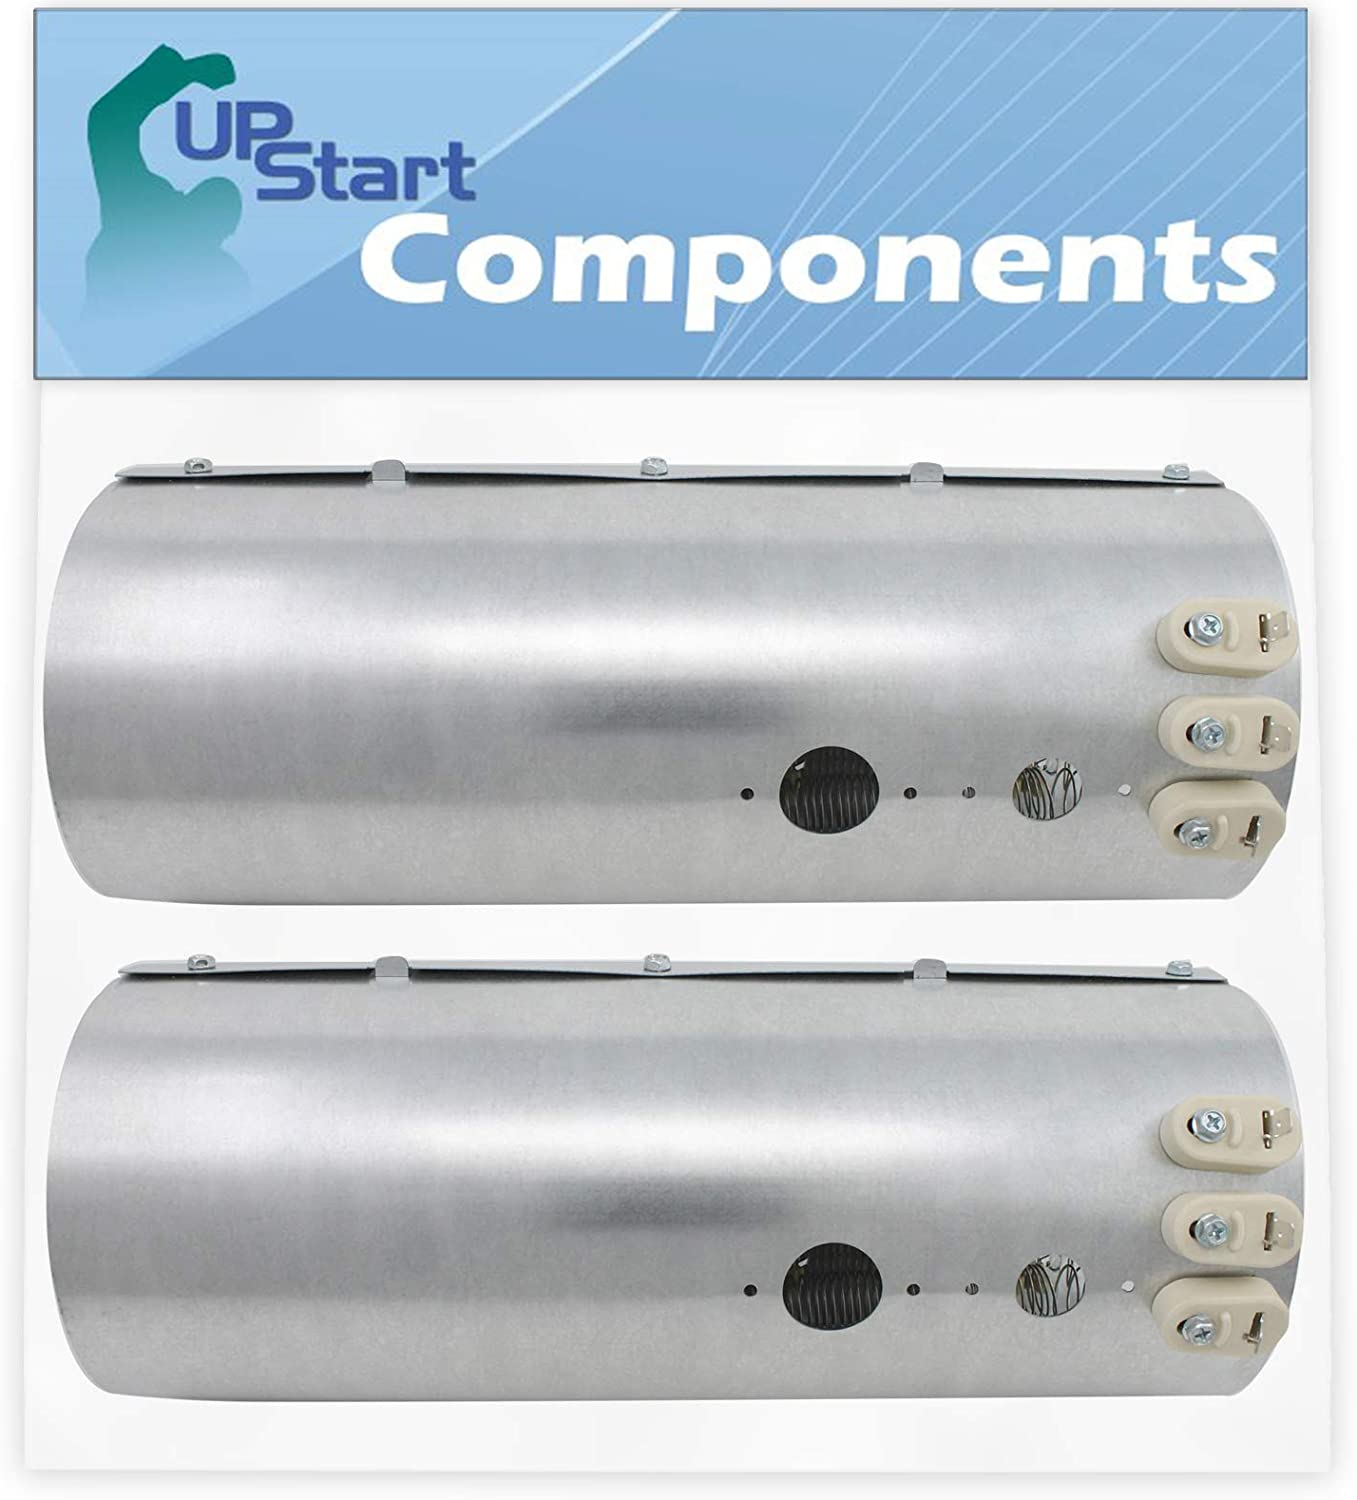 New color 2-Pack 134792700 Dryer Heating for Replacement Many popular brands Frigidair Element